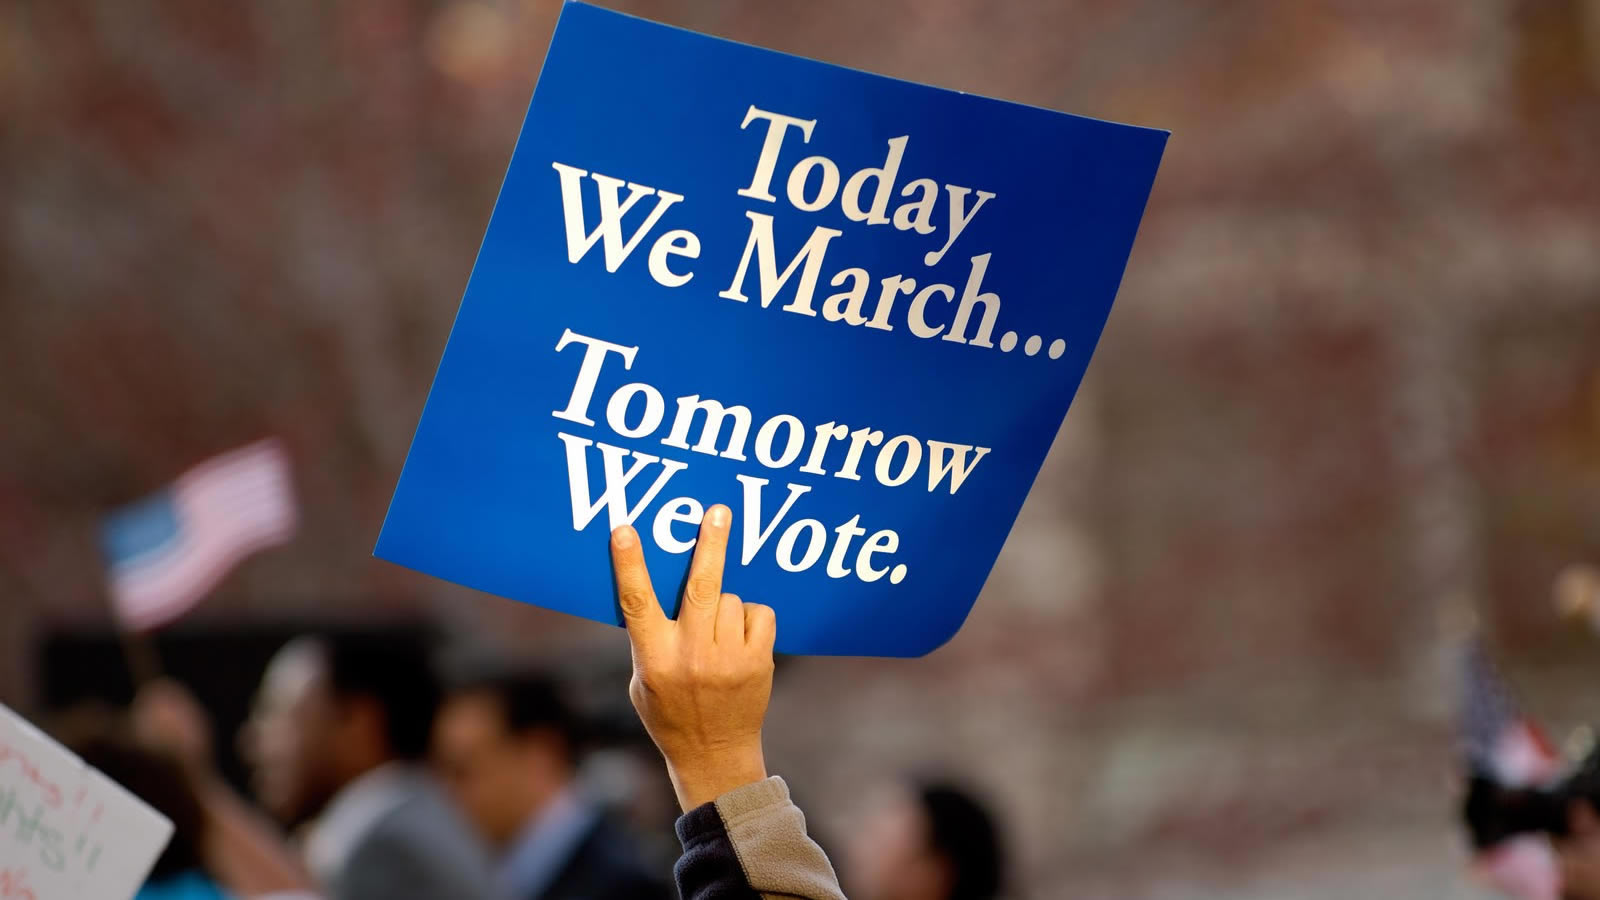 """Today We March, Tomorrow We Vote"" Sign"